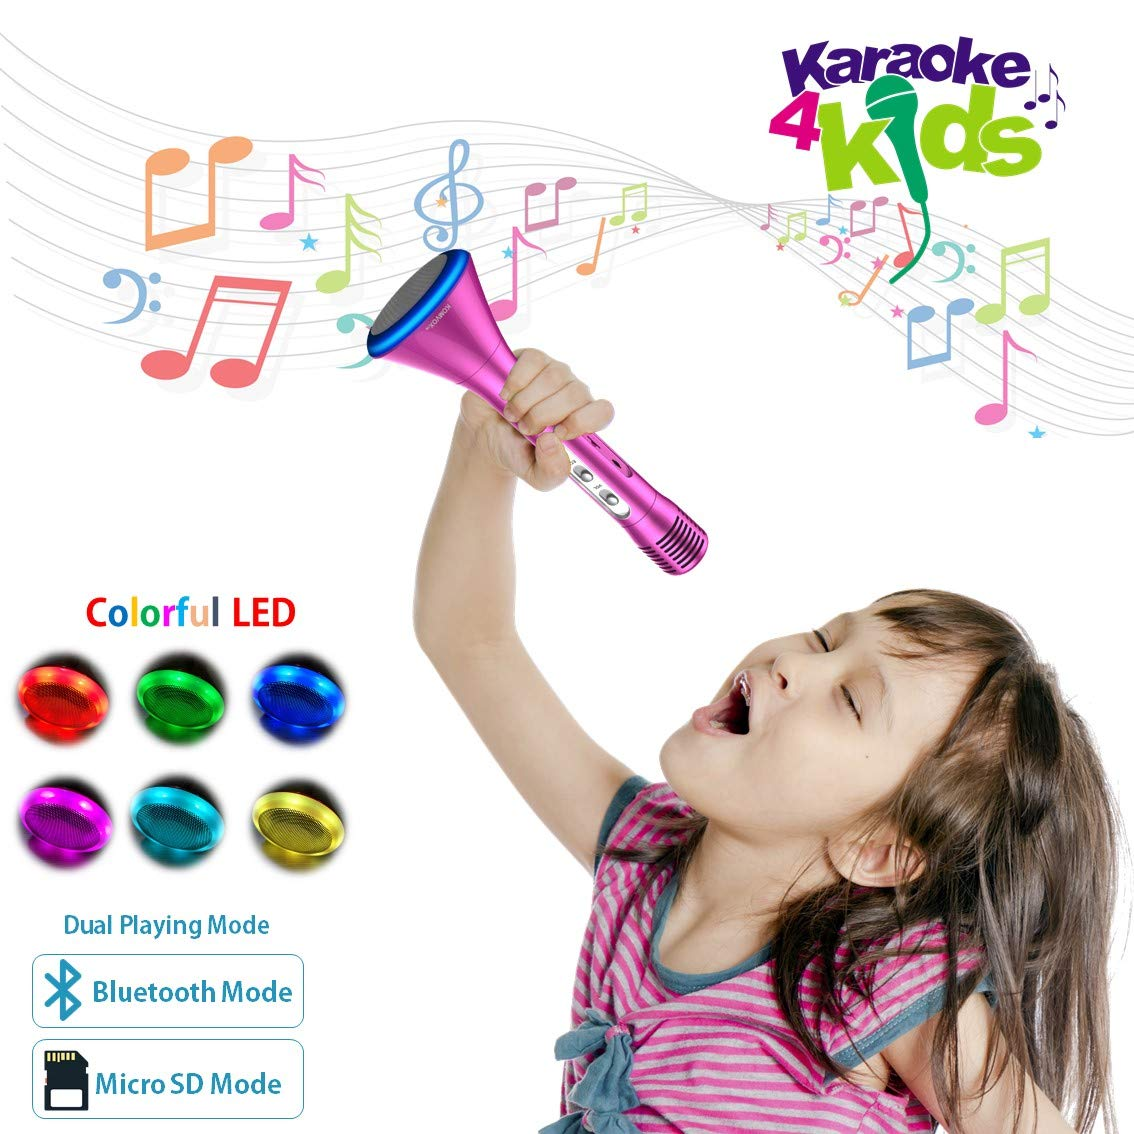 KOMVOX Karaoke Microphone For Kids Girls Toddlers Best Top Toys, Bluetooth Handheld Singing Machine for Little Girls Gifts 4 5 6 Years Old, Creative Girls Gift For Birthday Party